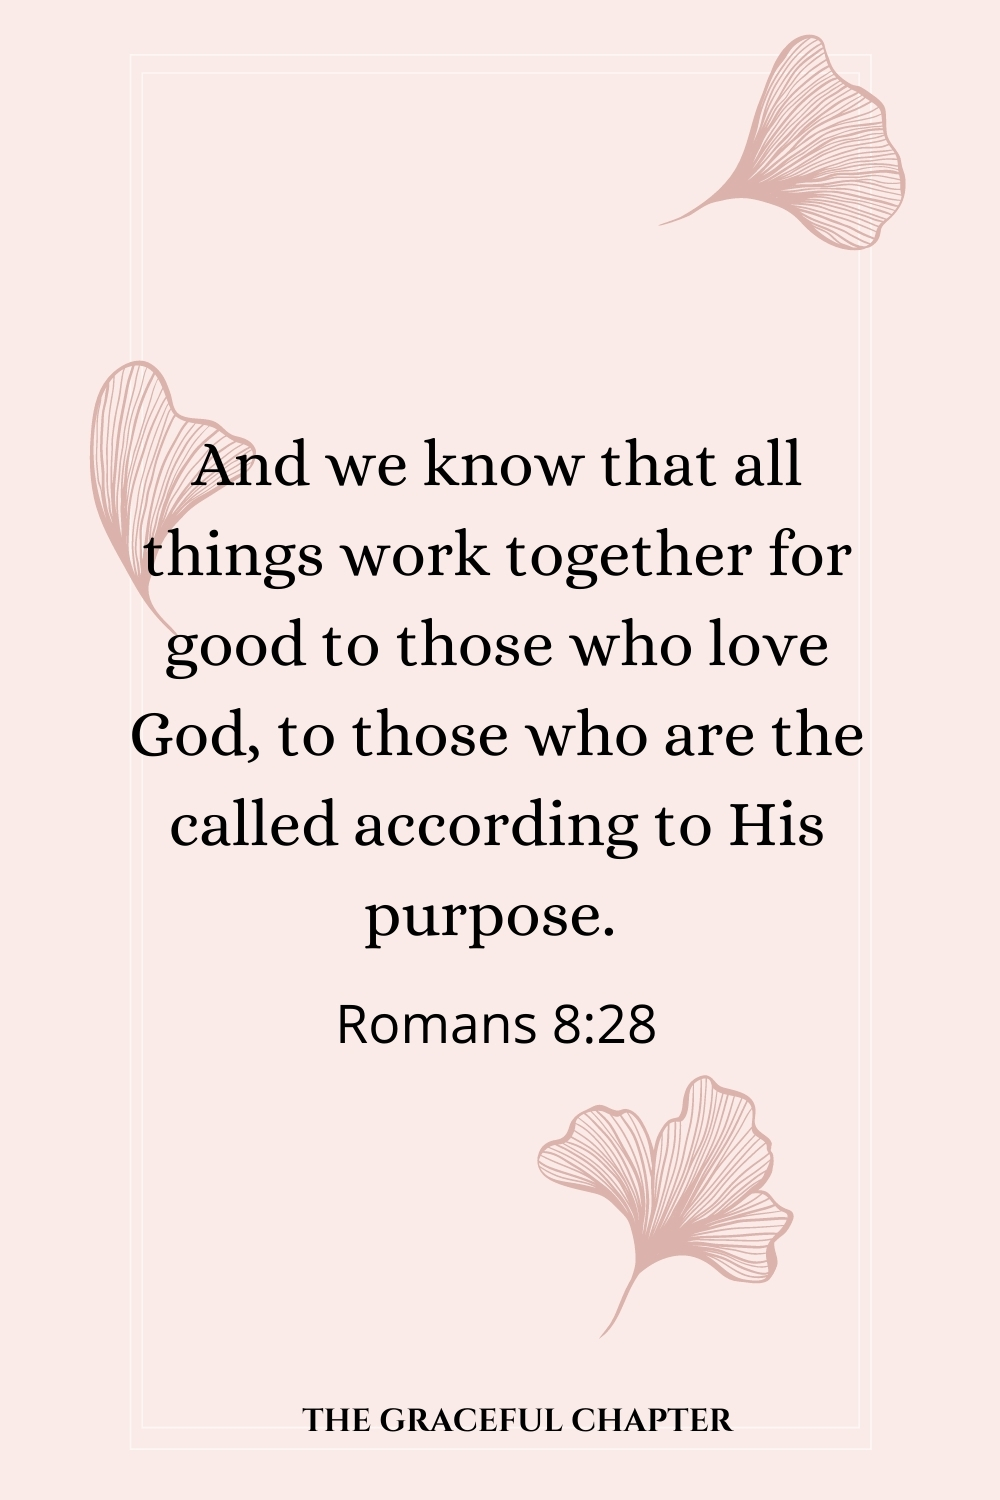 And we know that all things work together for good to those who love God, to those who are the called according to His purpose.  Romans 8:28